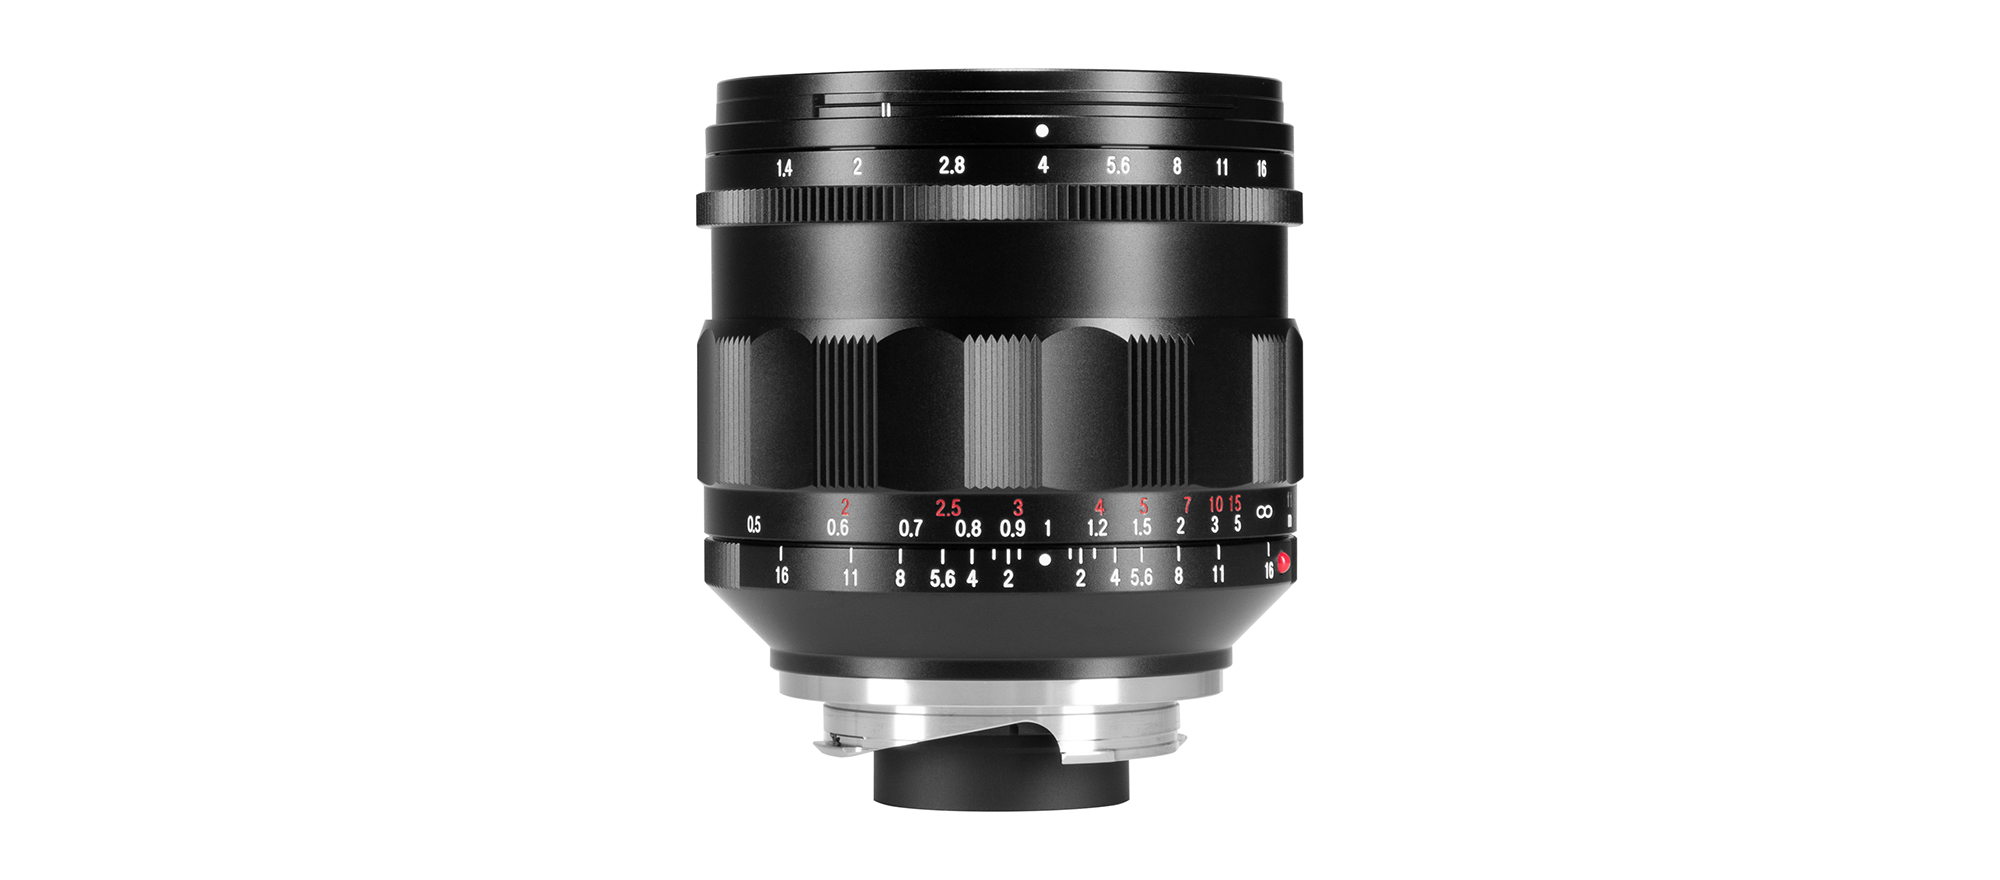 Voigtlander Nokton 21mm f/1.4 lens with Leica M mount seen from the side